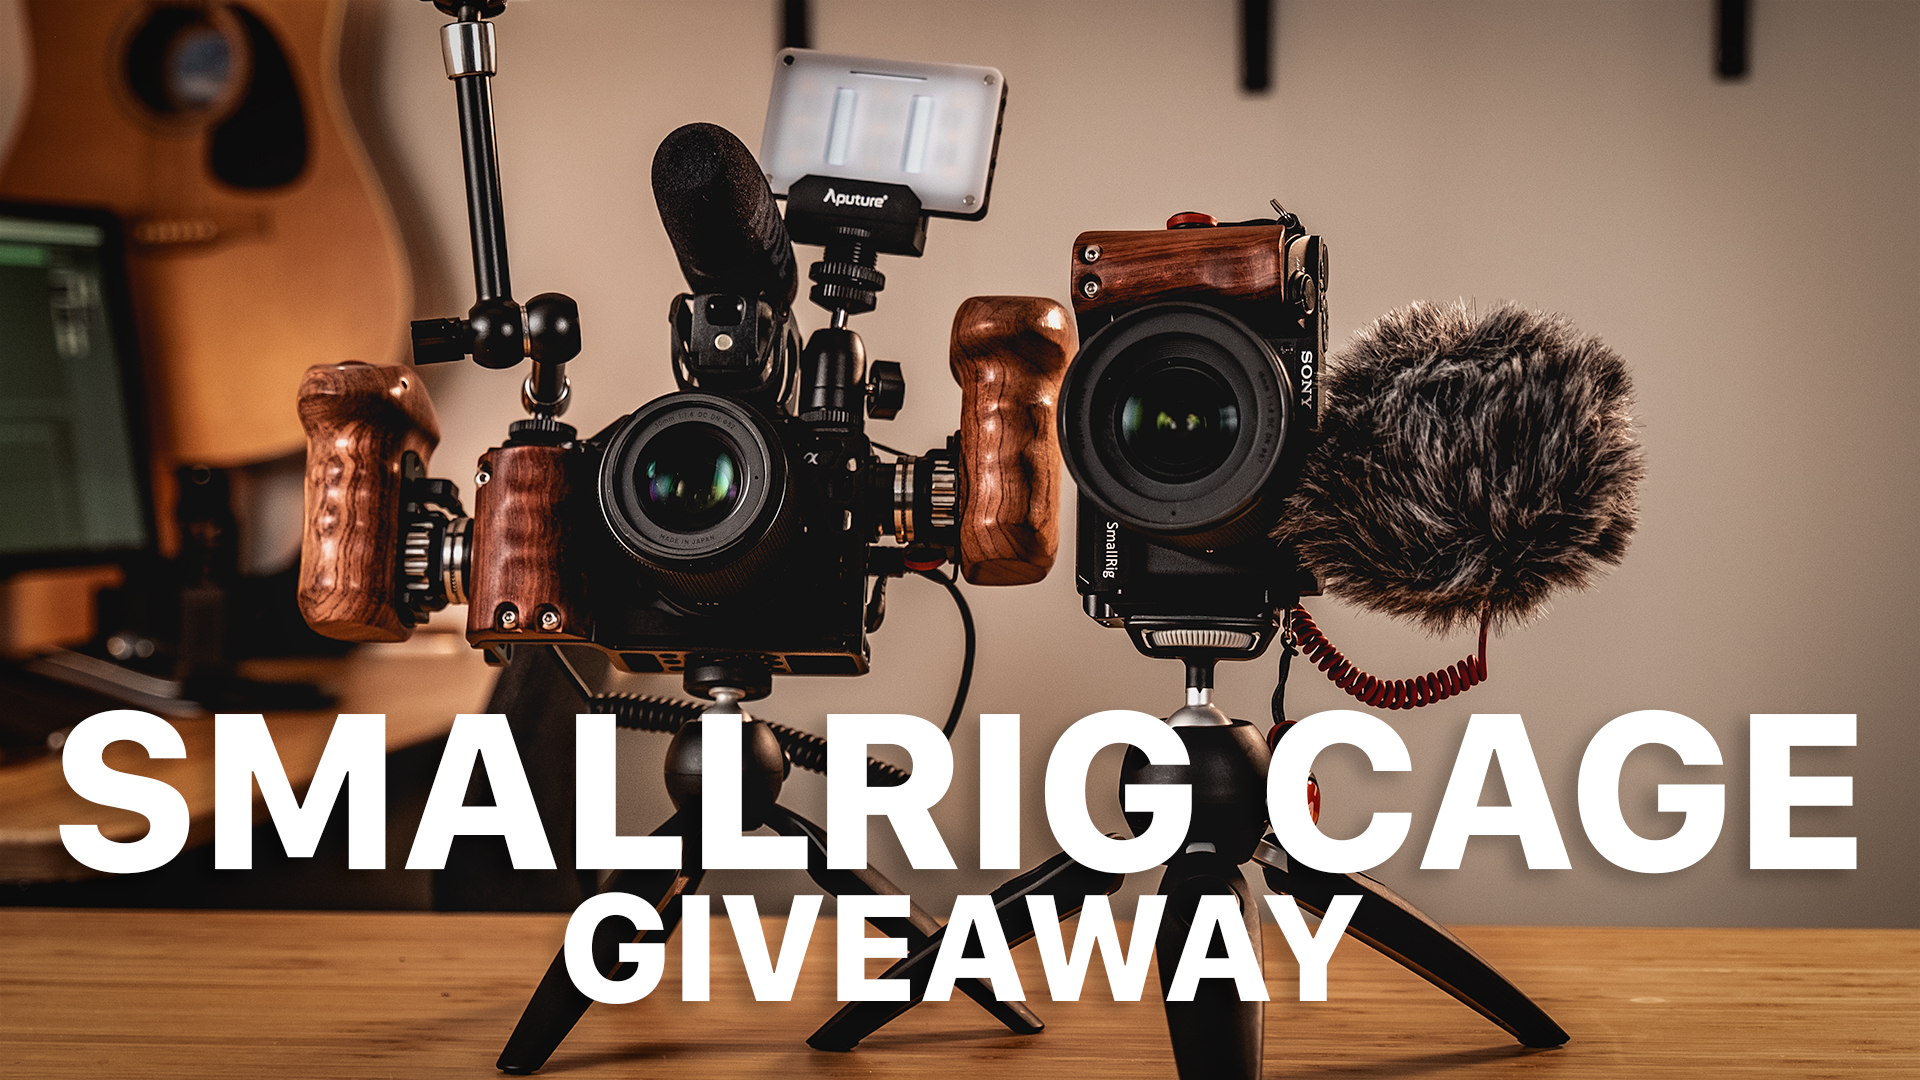 SmallRig Cage GIVEAWAY! // My FAVORITE Accessory